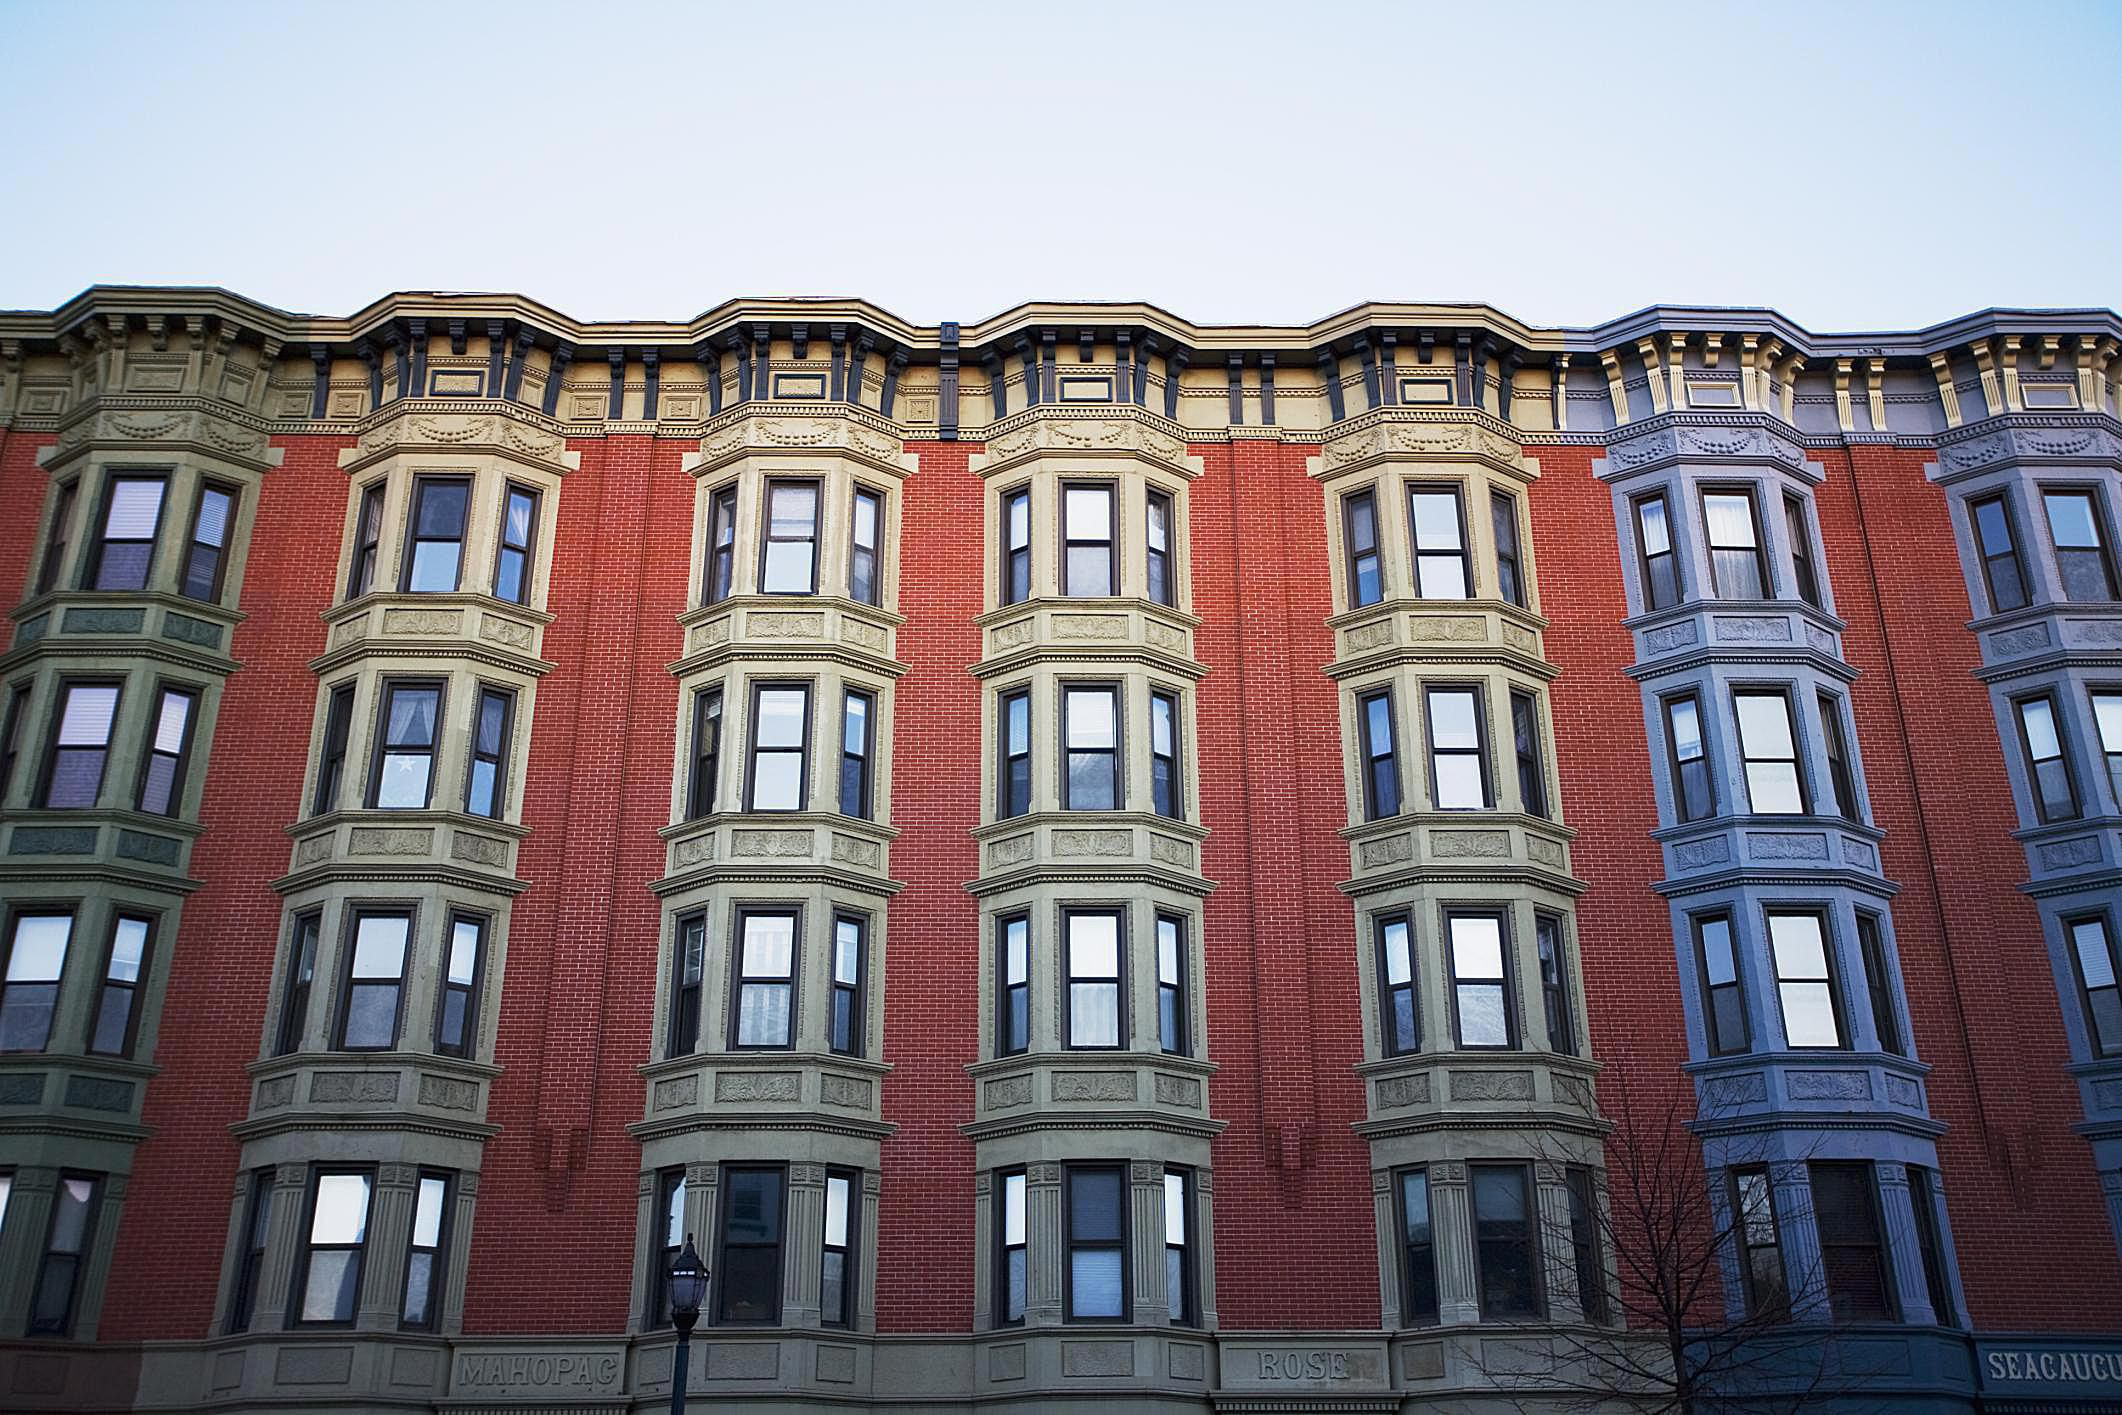 How To Find Privately Owned Hud Subsidized Apartments